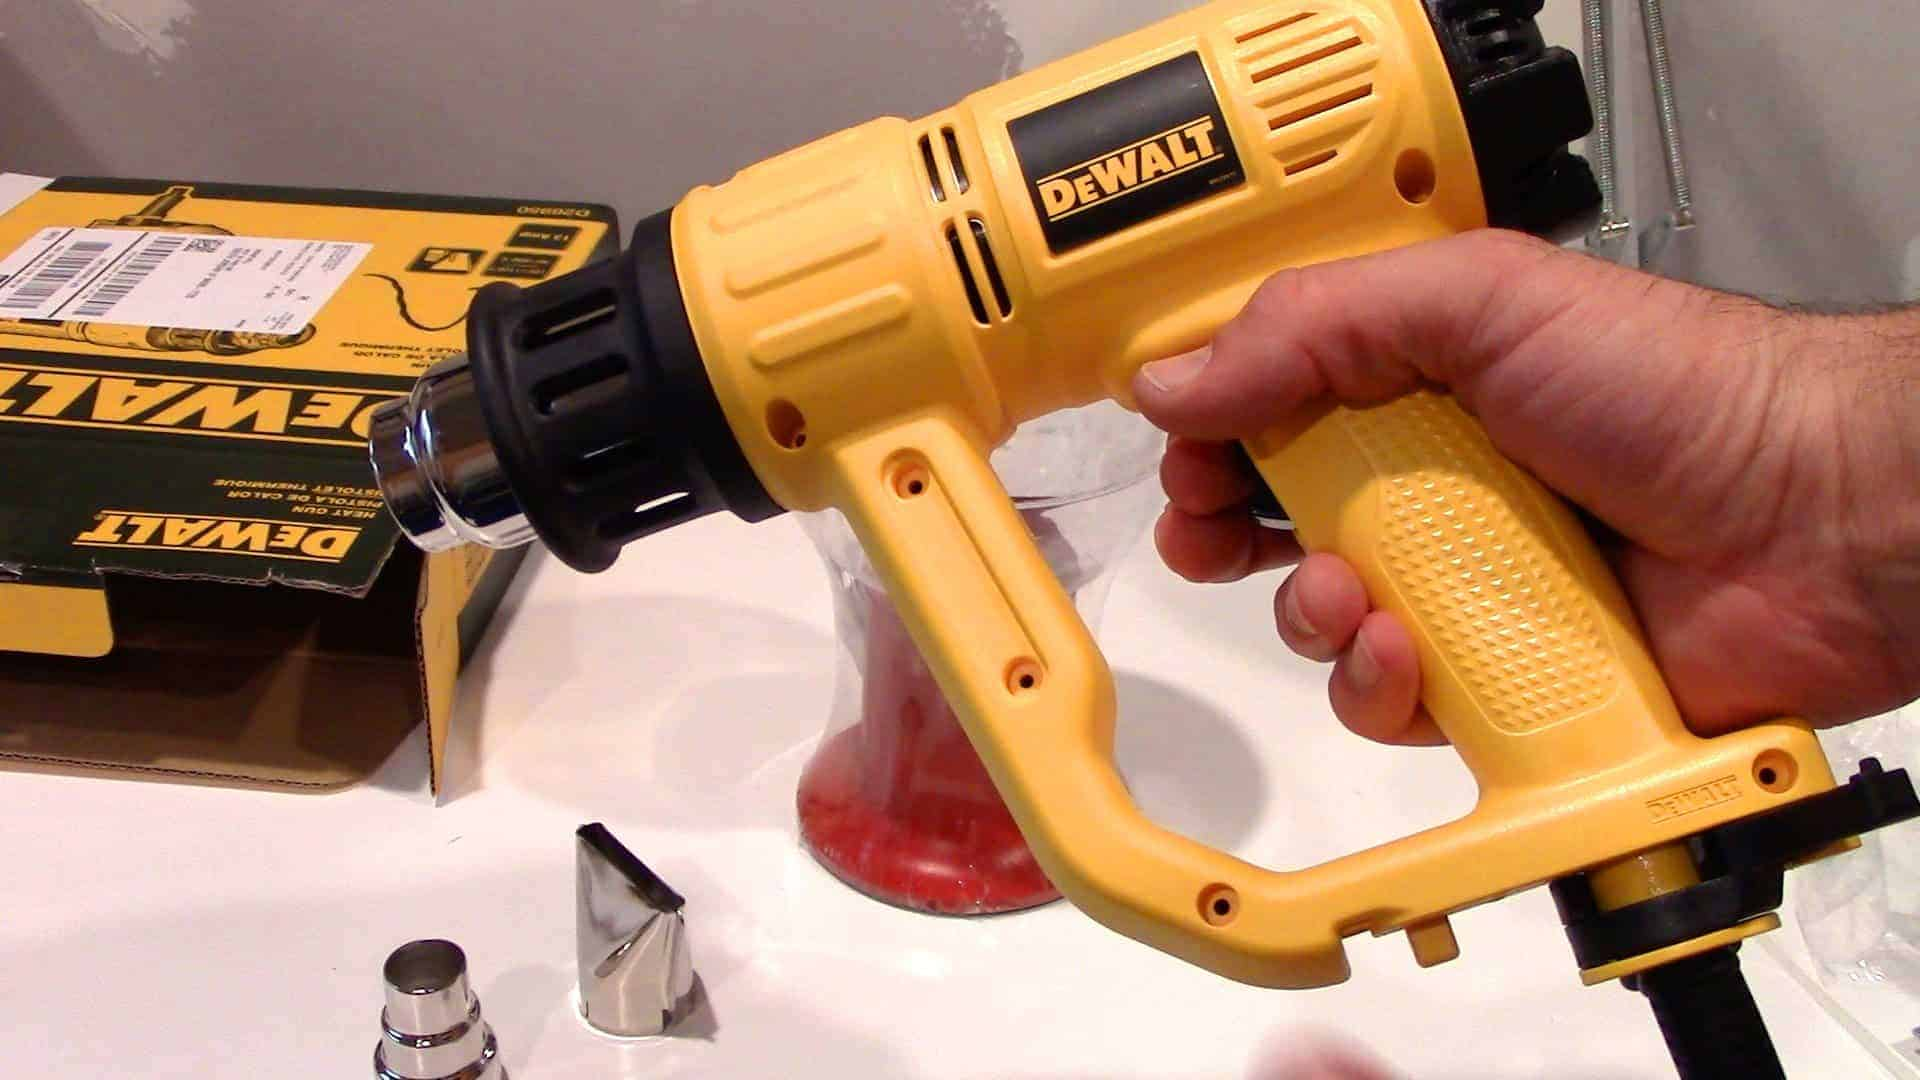 Dewalt D26960 Heat Gun Review